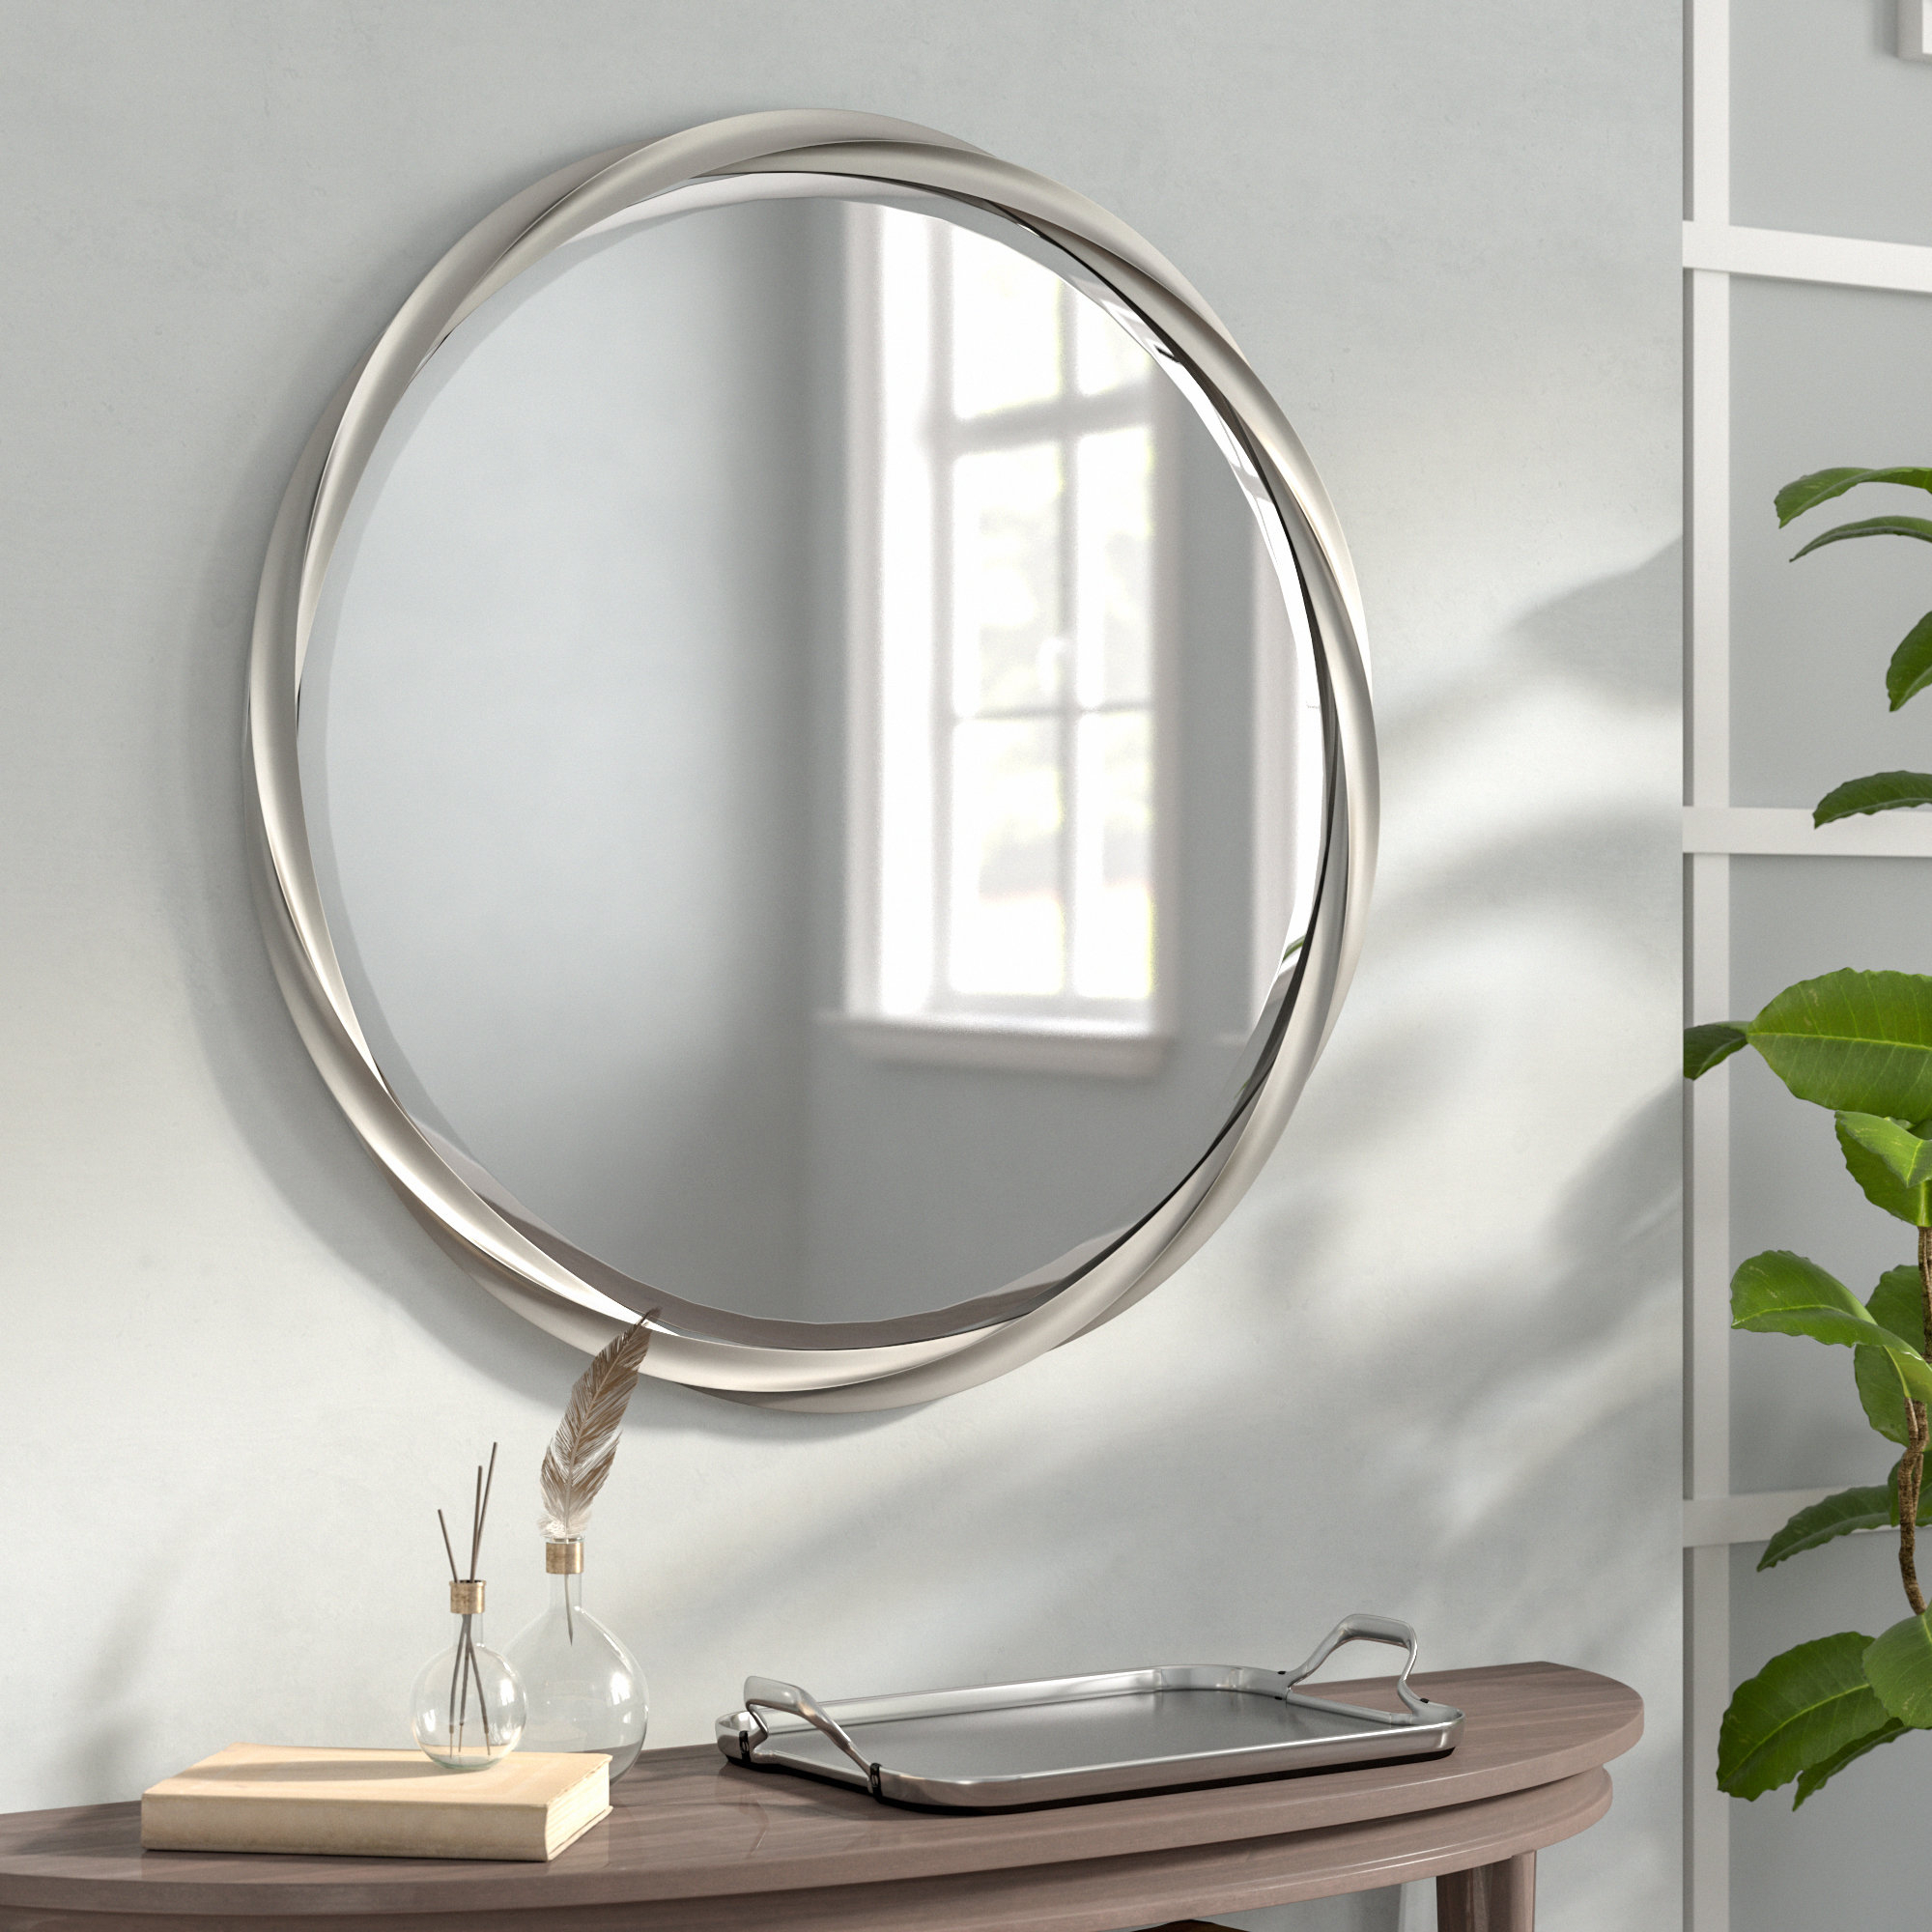 Modern & Contemporary Beveled Accent Mirror Within Modern & Contemporary Beveled Accent Mirrors (View 25 of 30)